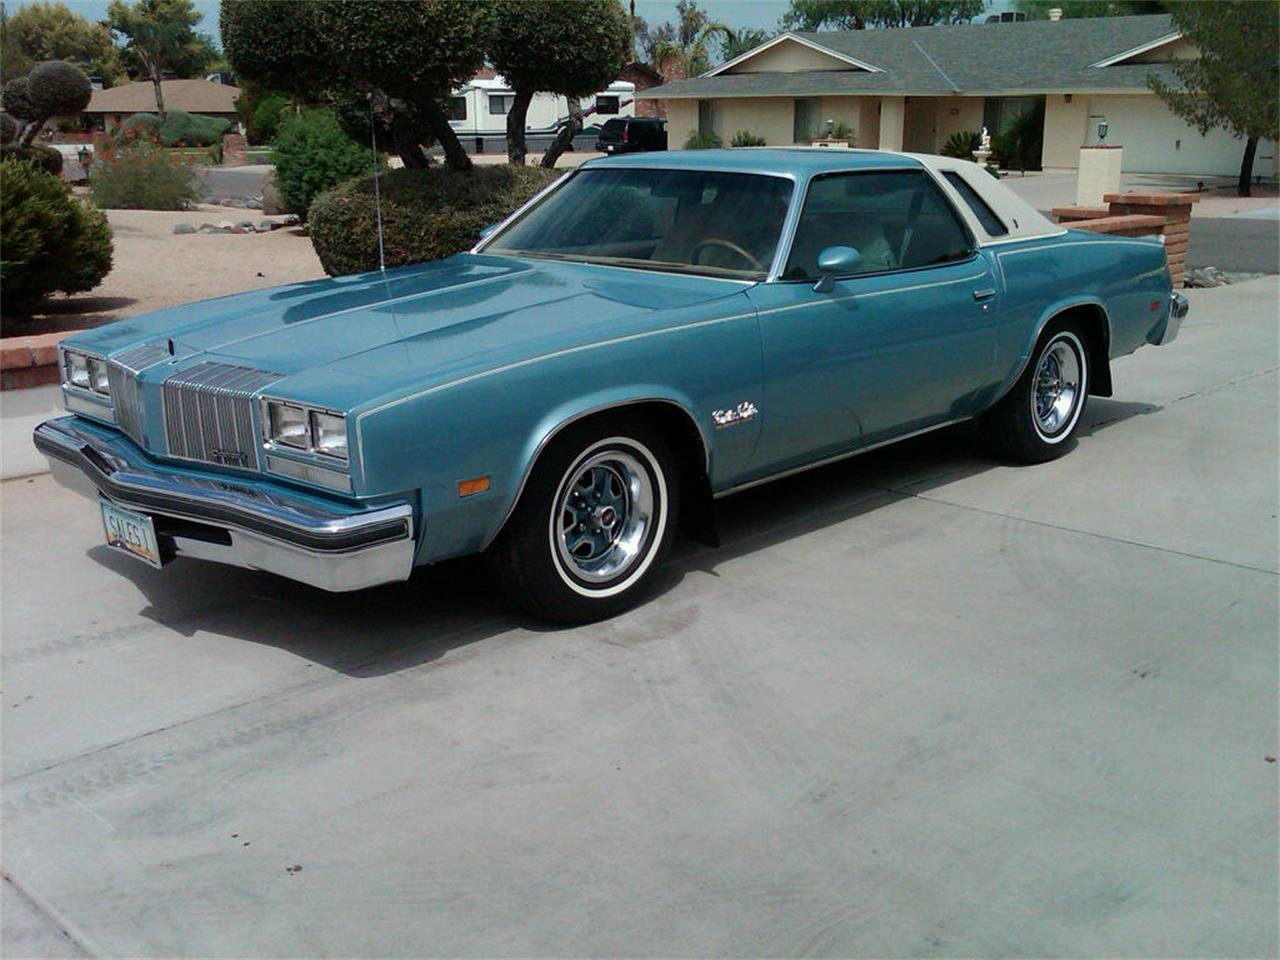 Large Picture of '77 Cutlass located in Arizona Offered by a Private Seller - DISY